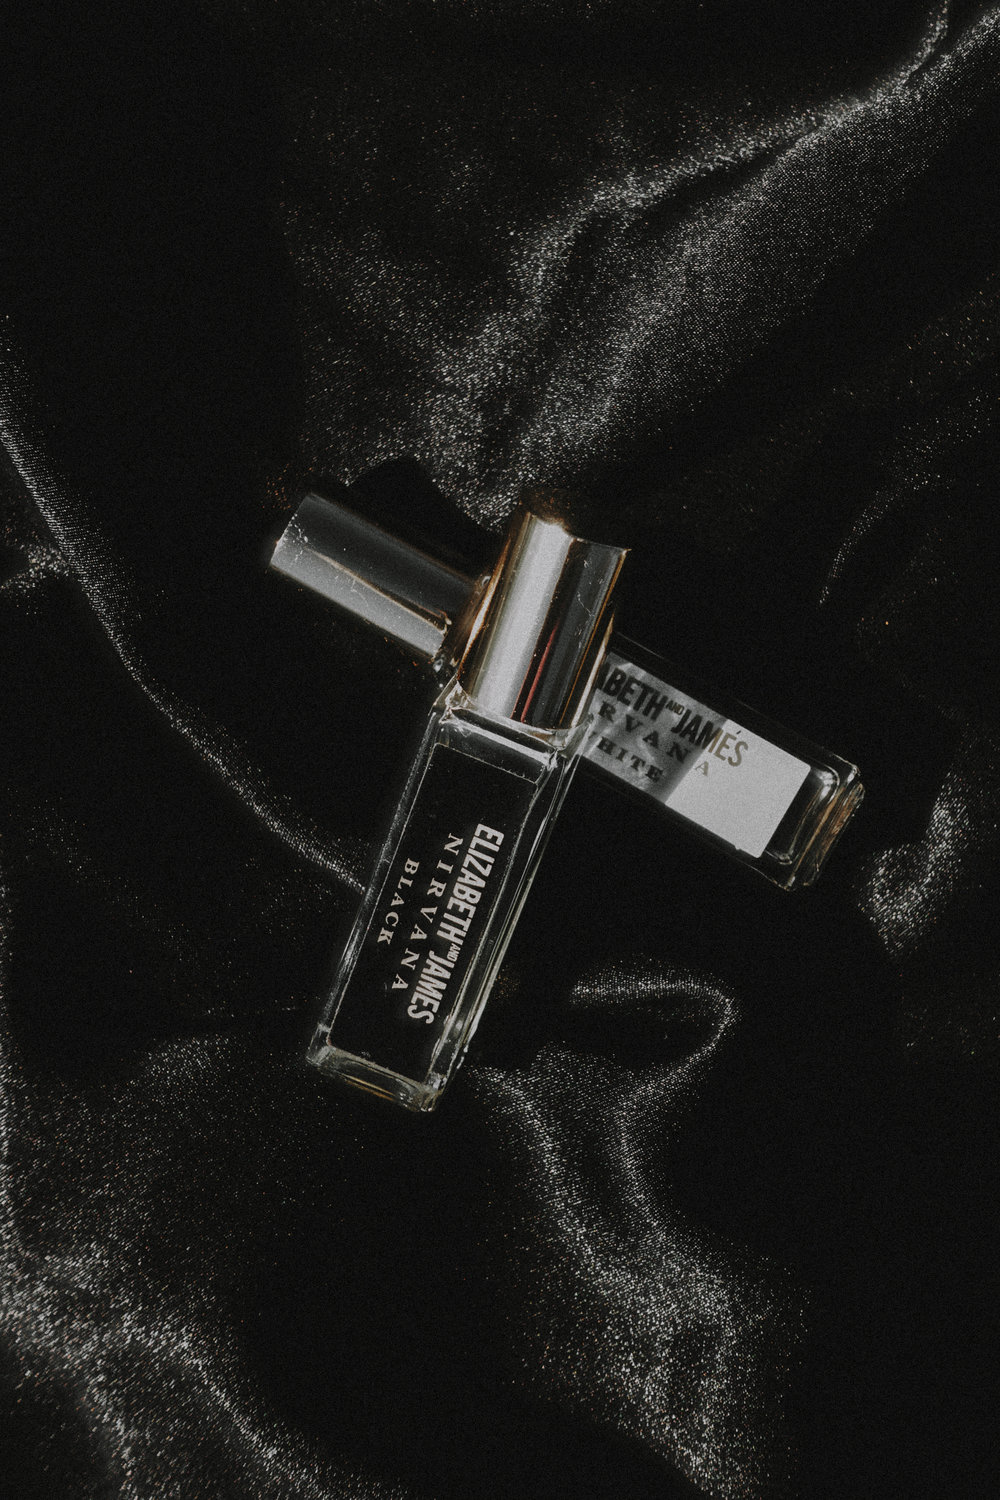 Incredible duo: Elizabeth + James - Nirvana White + Nirvana Black, Mini Rollerball Set - $25